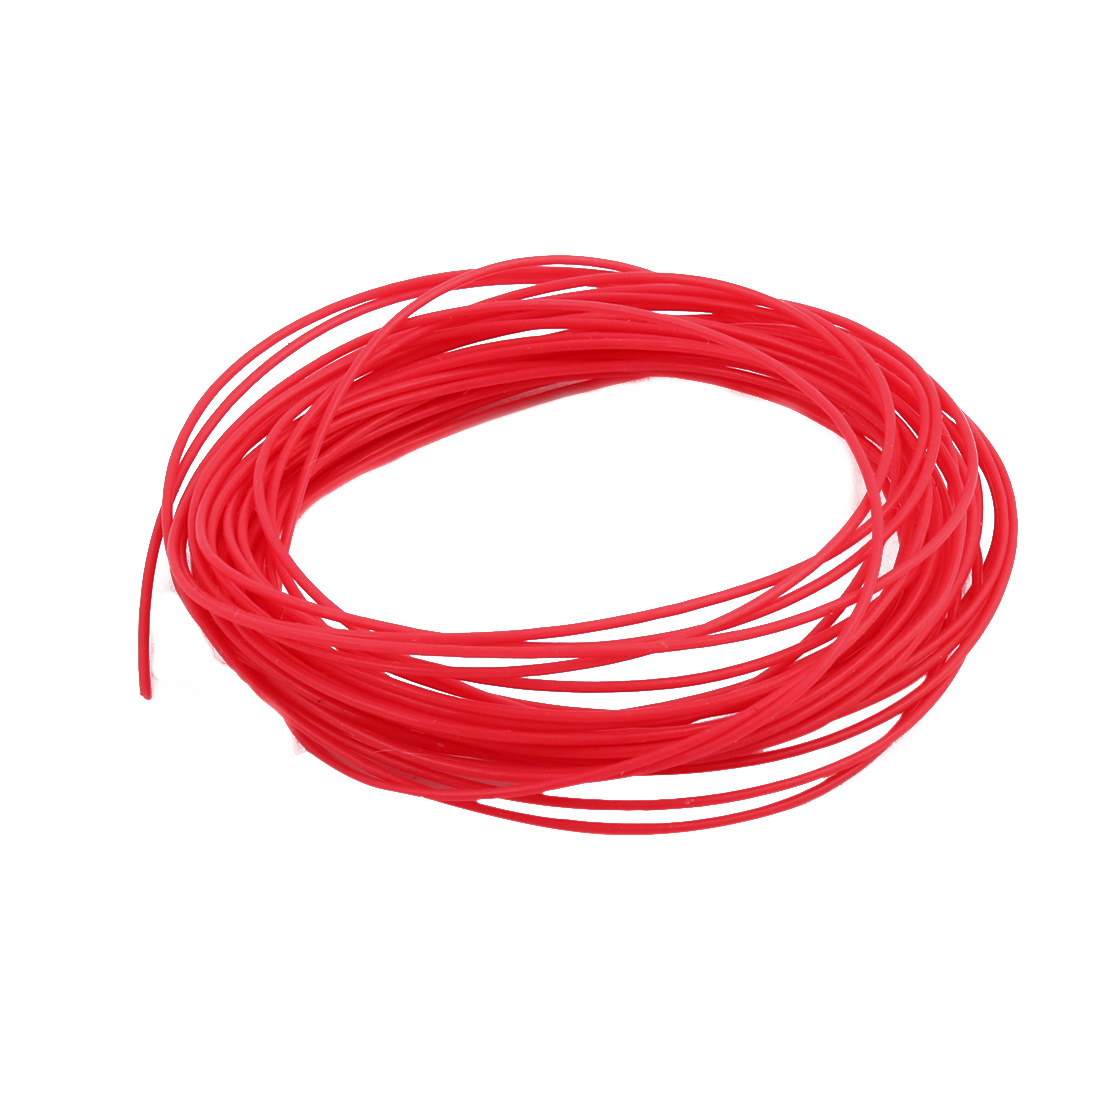 0.66mmx0.96mm PTFE Resistant High Temperature Red Tubing 5 Meters 16.4Ft